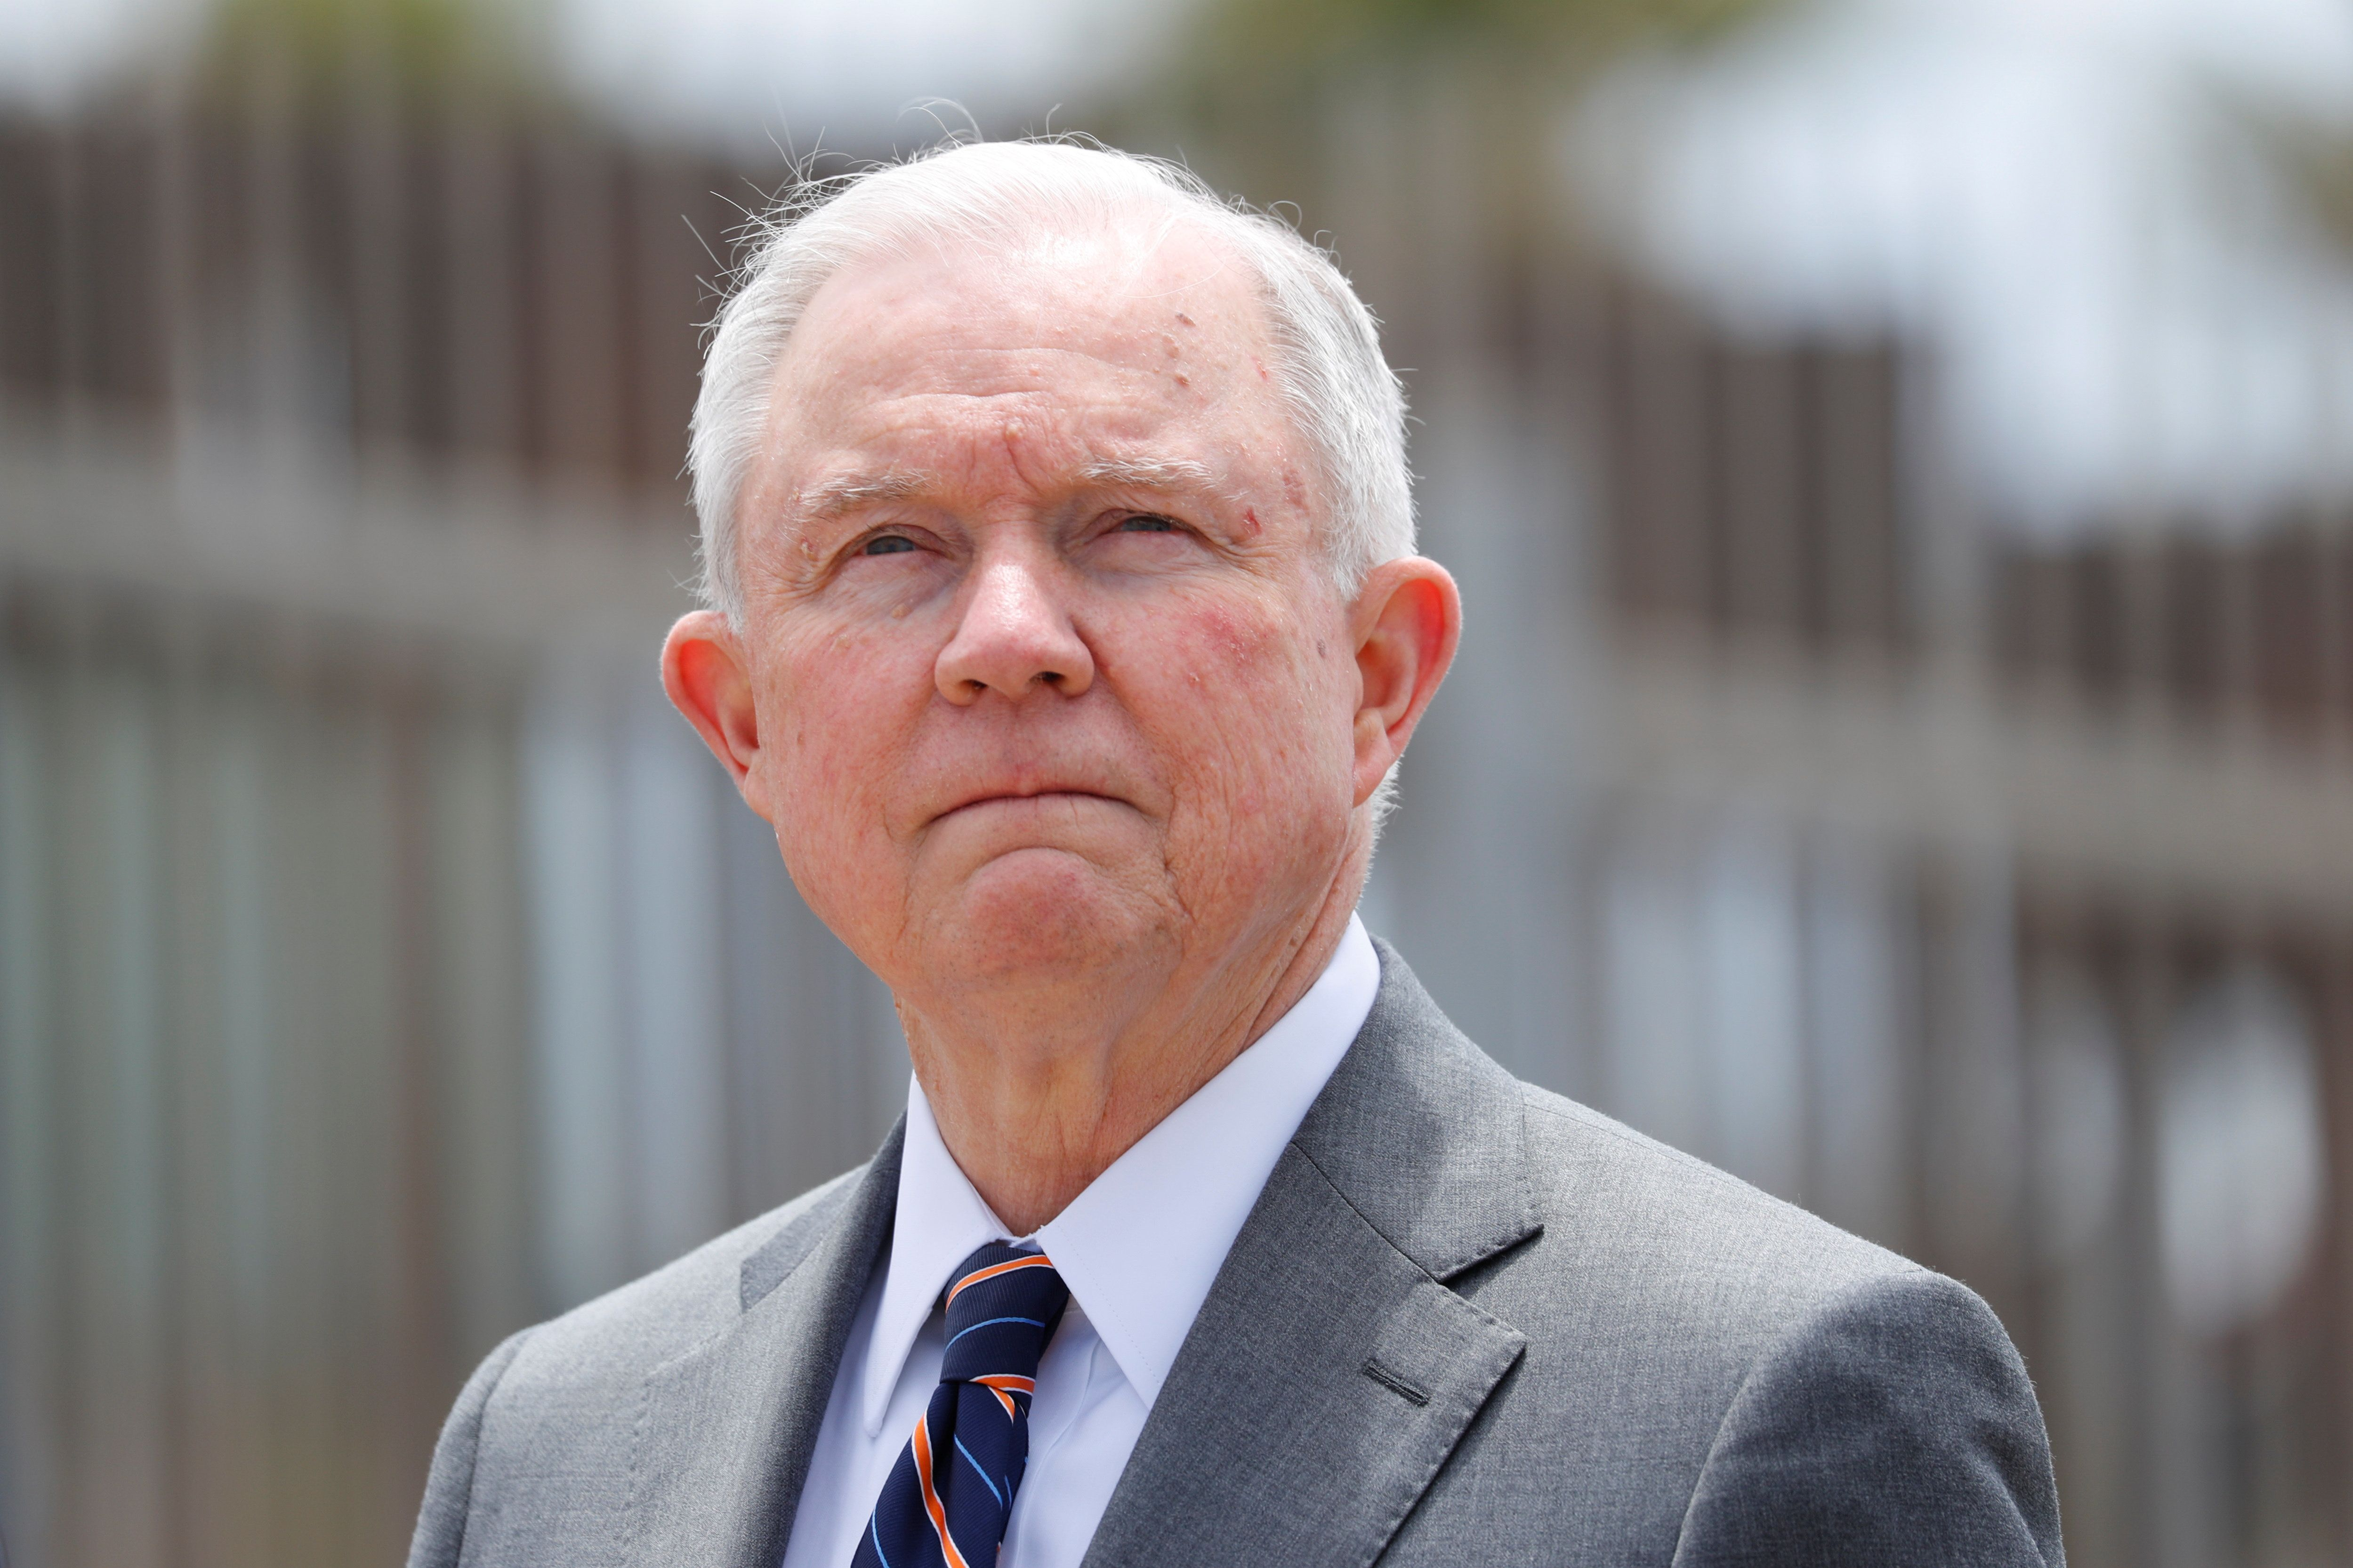 Attorney General Jeff Sessions stands next to the border fence near San Diego on May 7 as he discusses immigration enforcemen